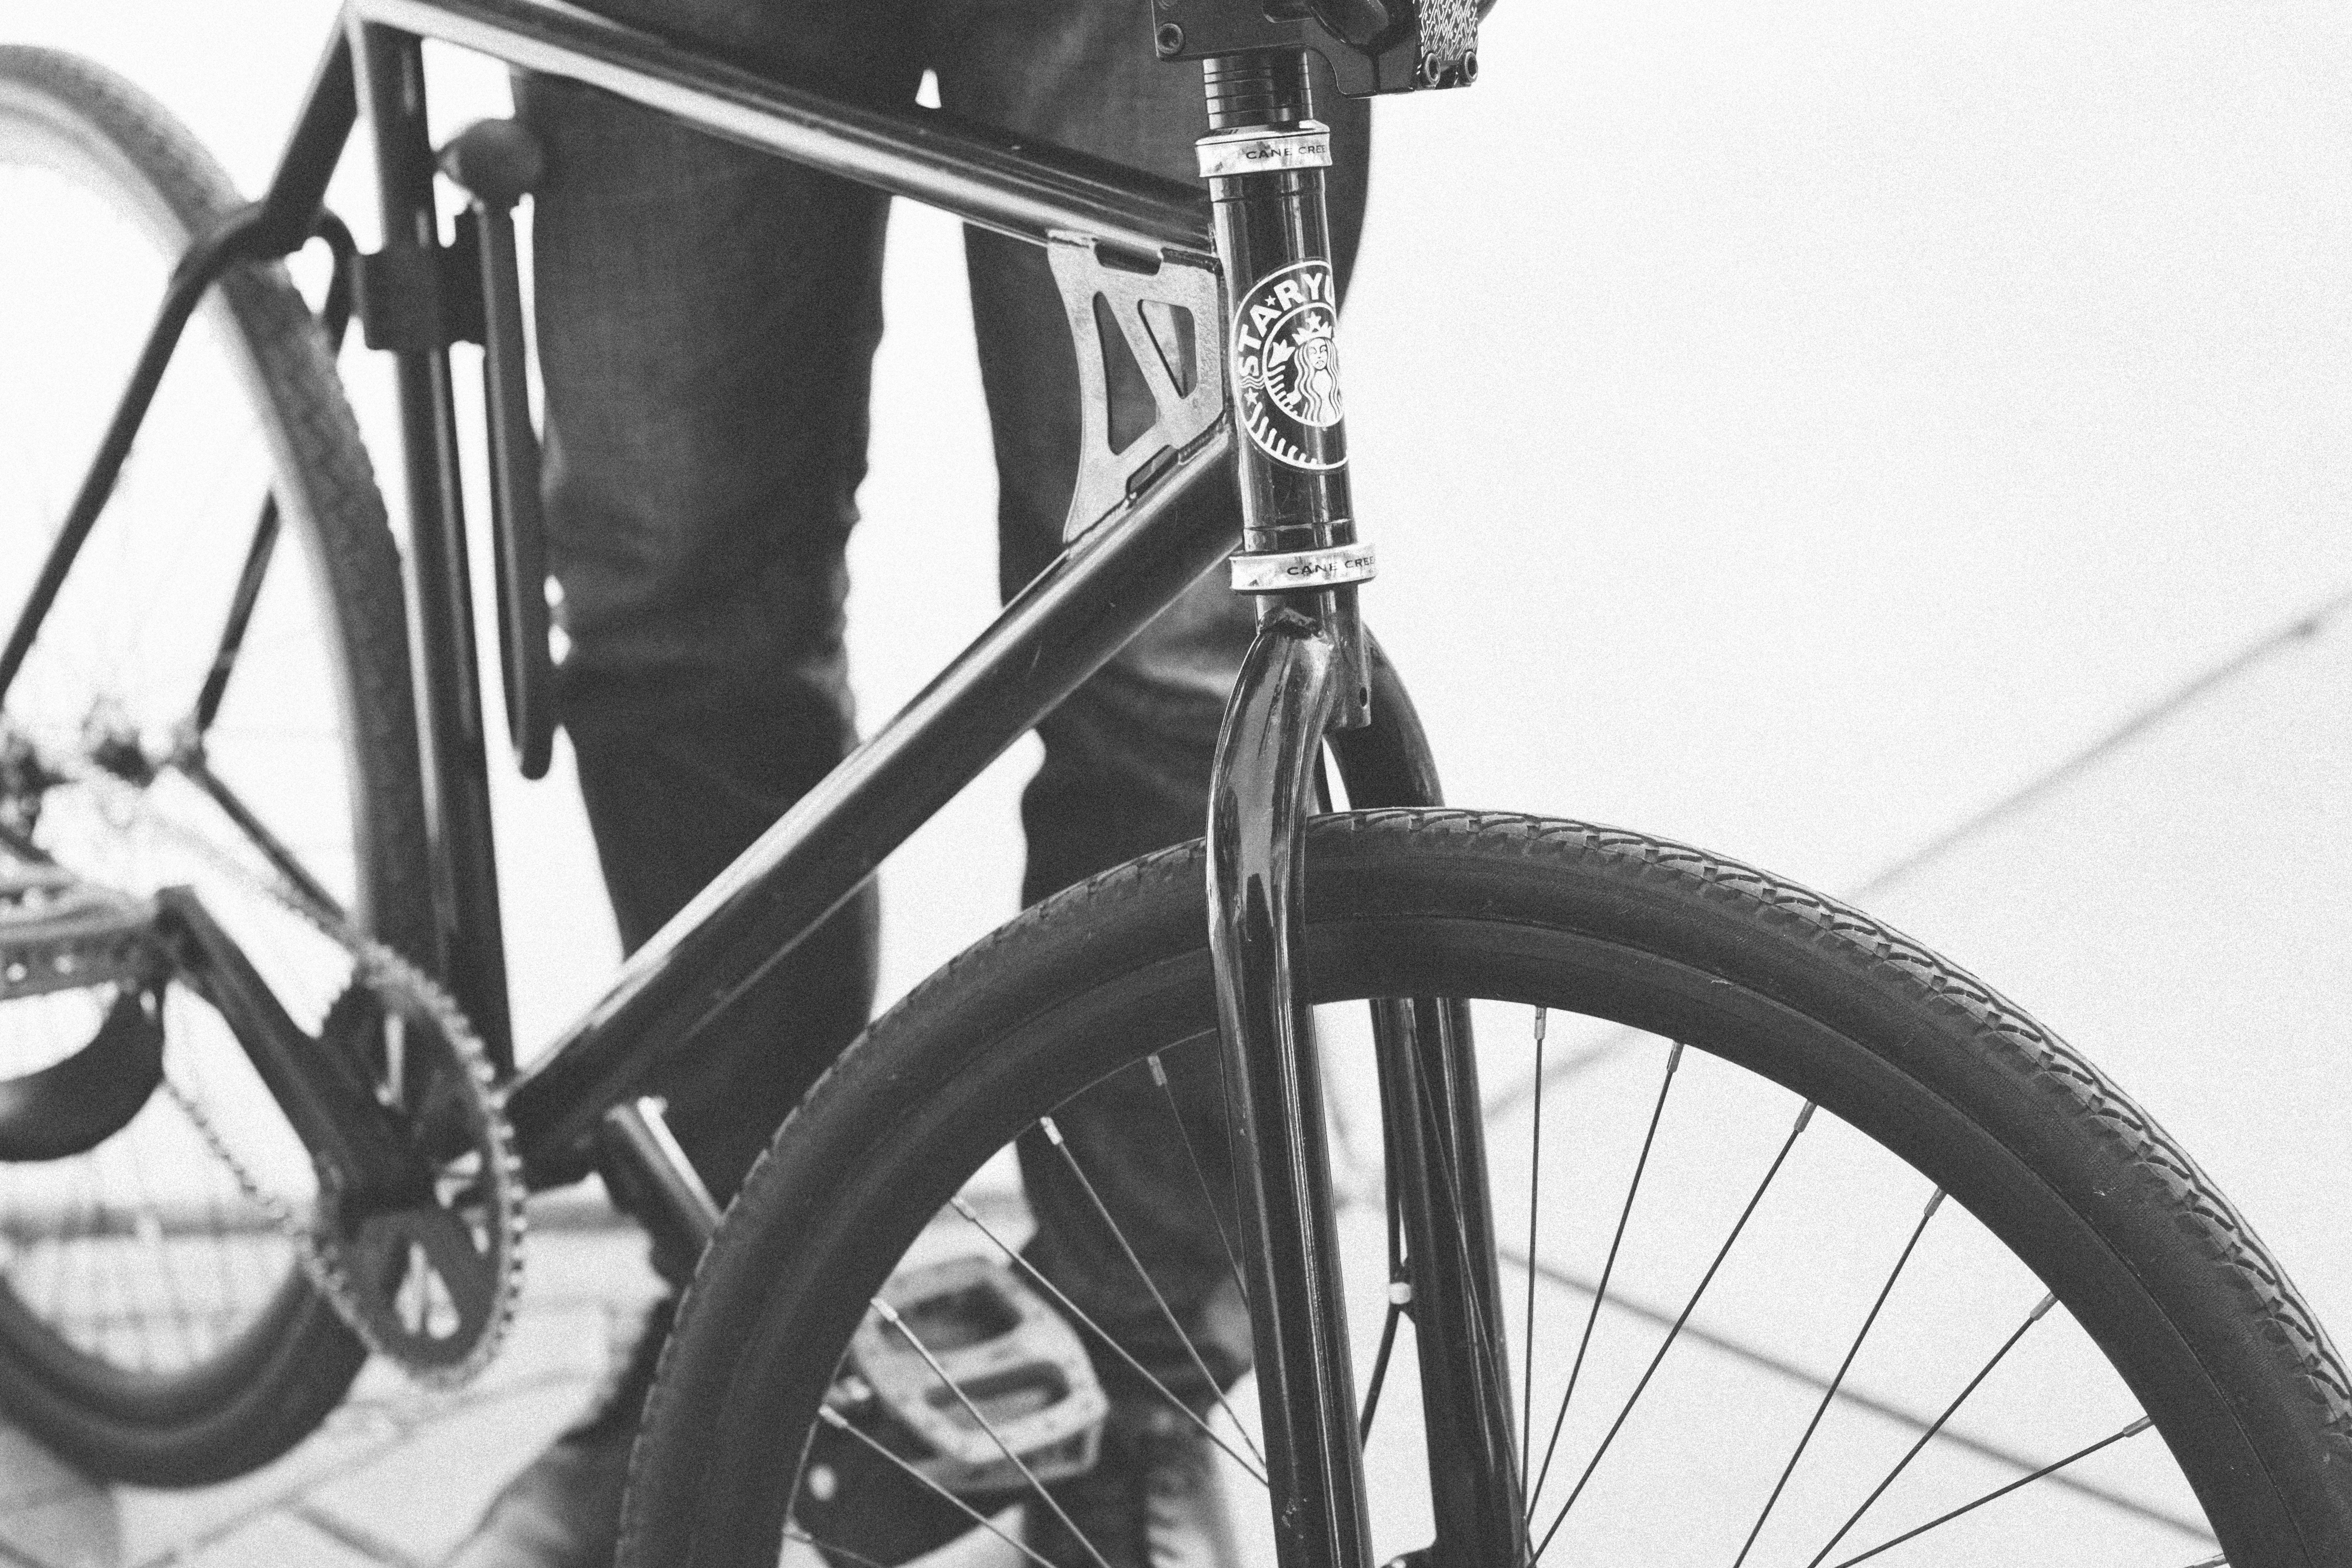 Black and white photo of bicycle